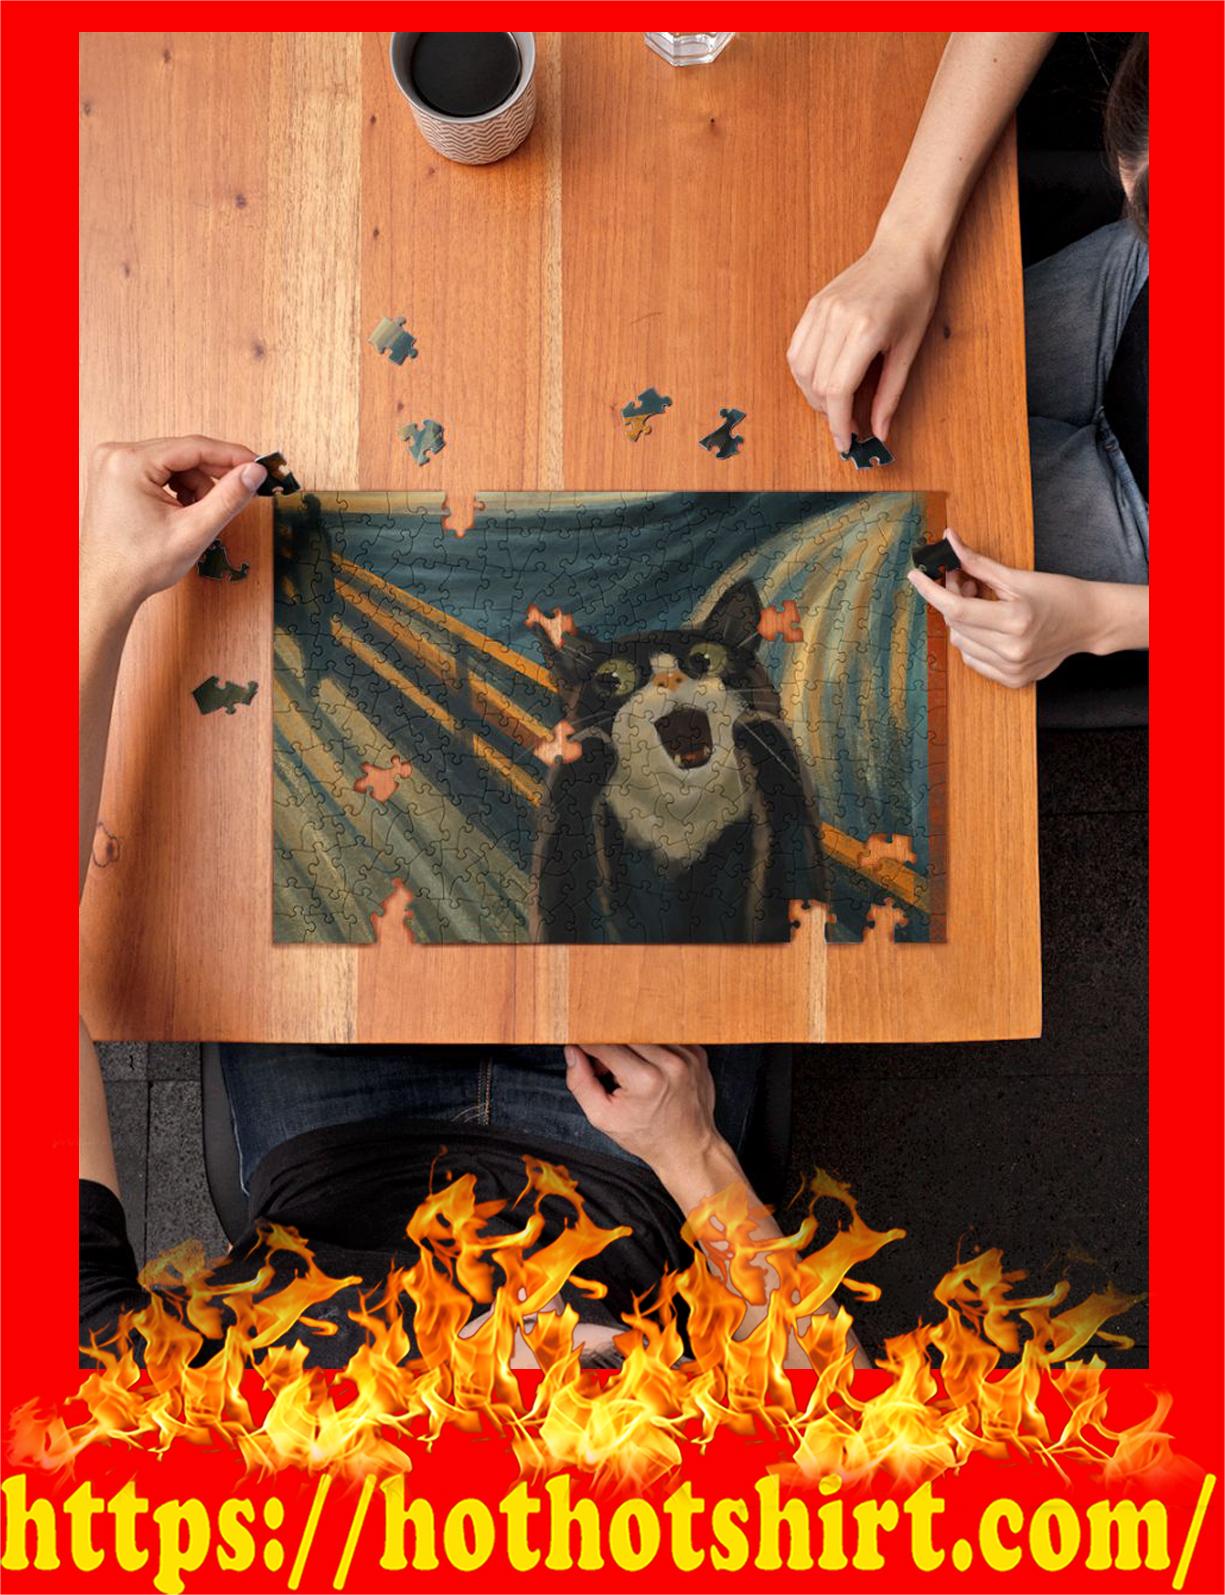 Screaming cat jigsaw puzzles pic 2